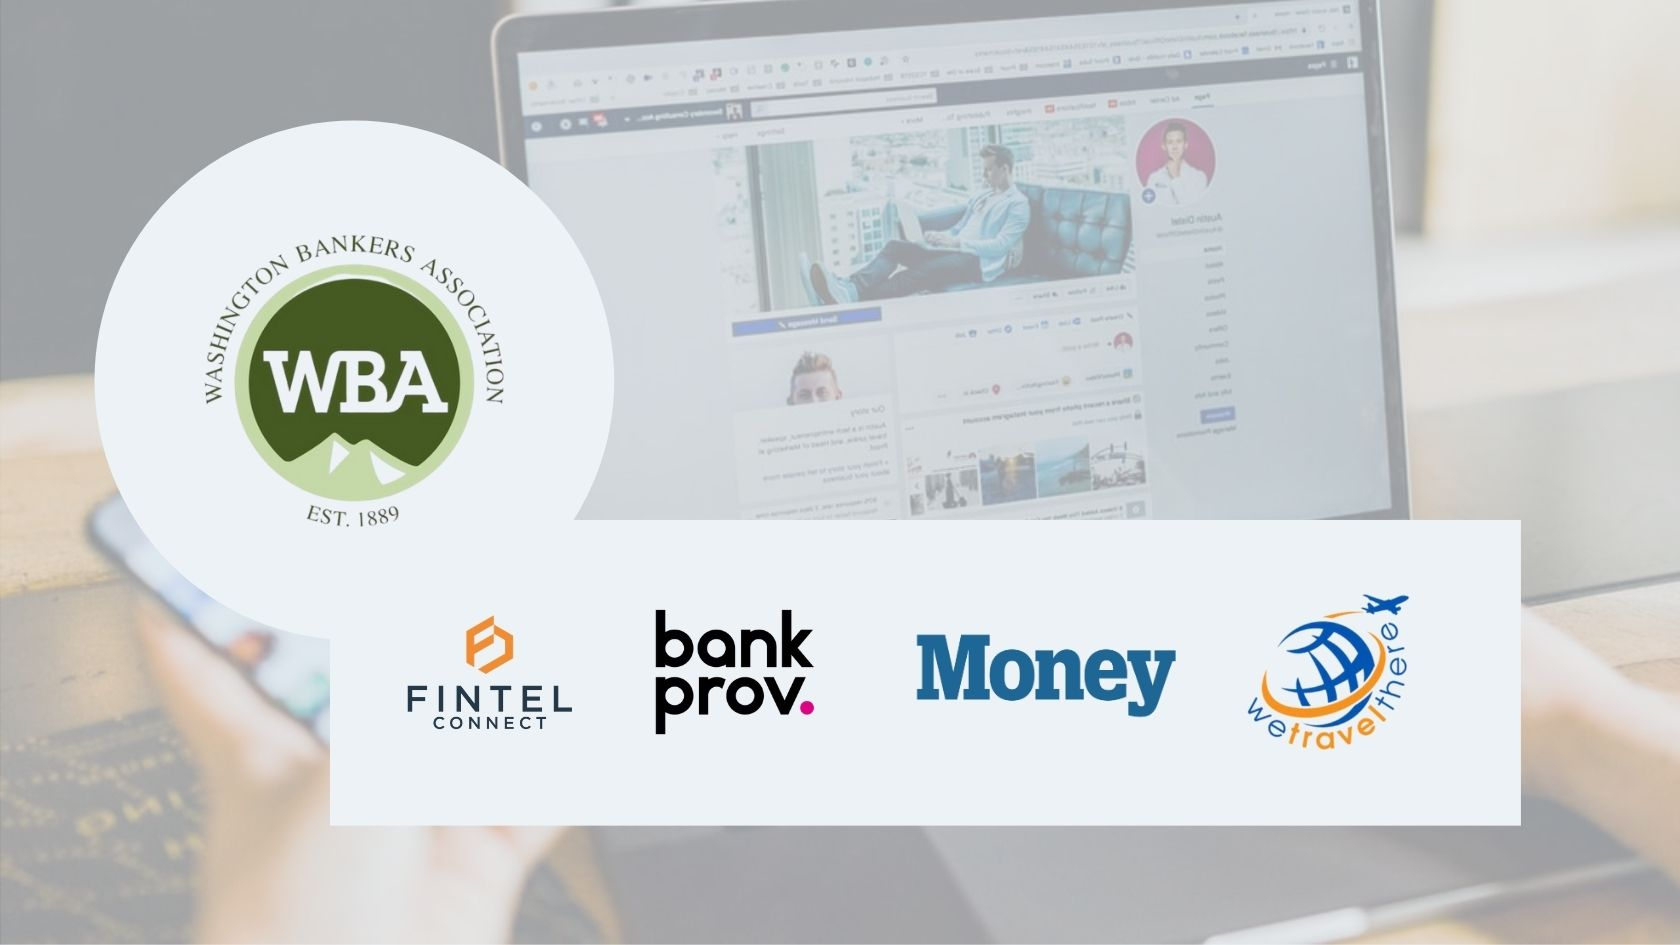 Fintel Connect Collaborates with Washington Bankers on Influencer Marketing Session for Banks